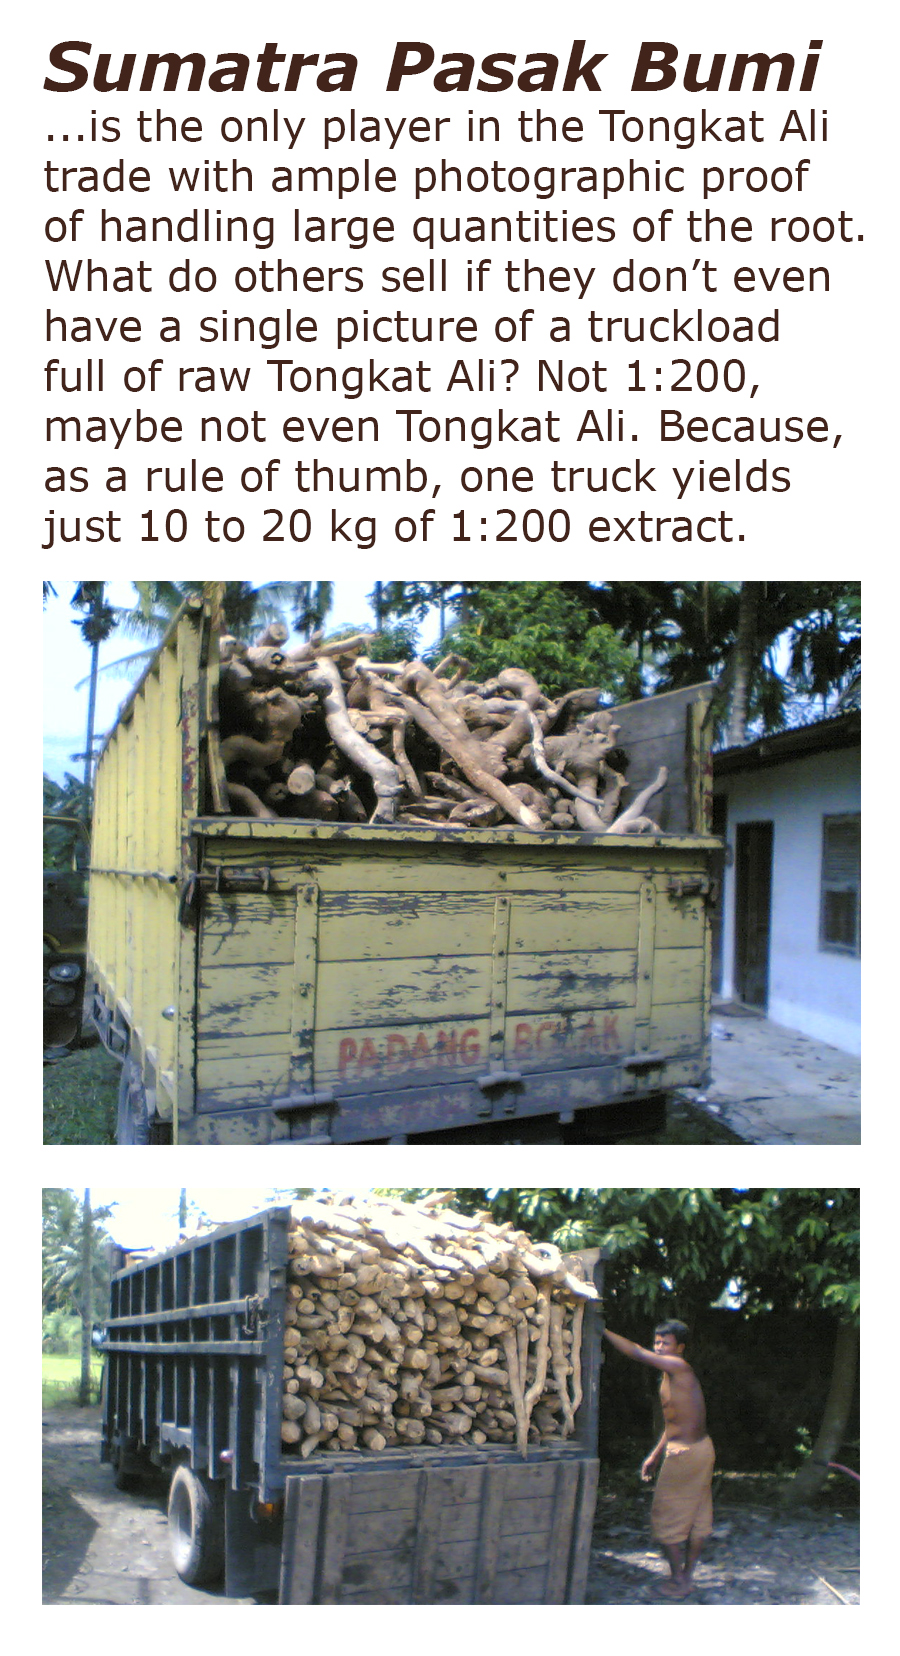 Sumatra Pasak Bumi is the only player in the Tongkat Ali trade with ample photographic proof of handling large quantities of the root. What do others sell if they dont even have a single picture of a truckload full of raw Tongkat Ali? Not 1:200, maybe not even Tongkat Ali. Because, as a rule of thumb, one truck yields just 10 to 20 kg of 1:200 extract.